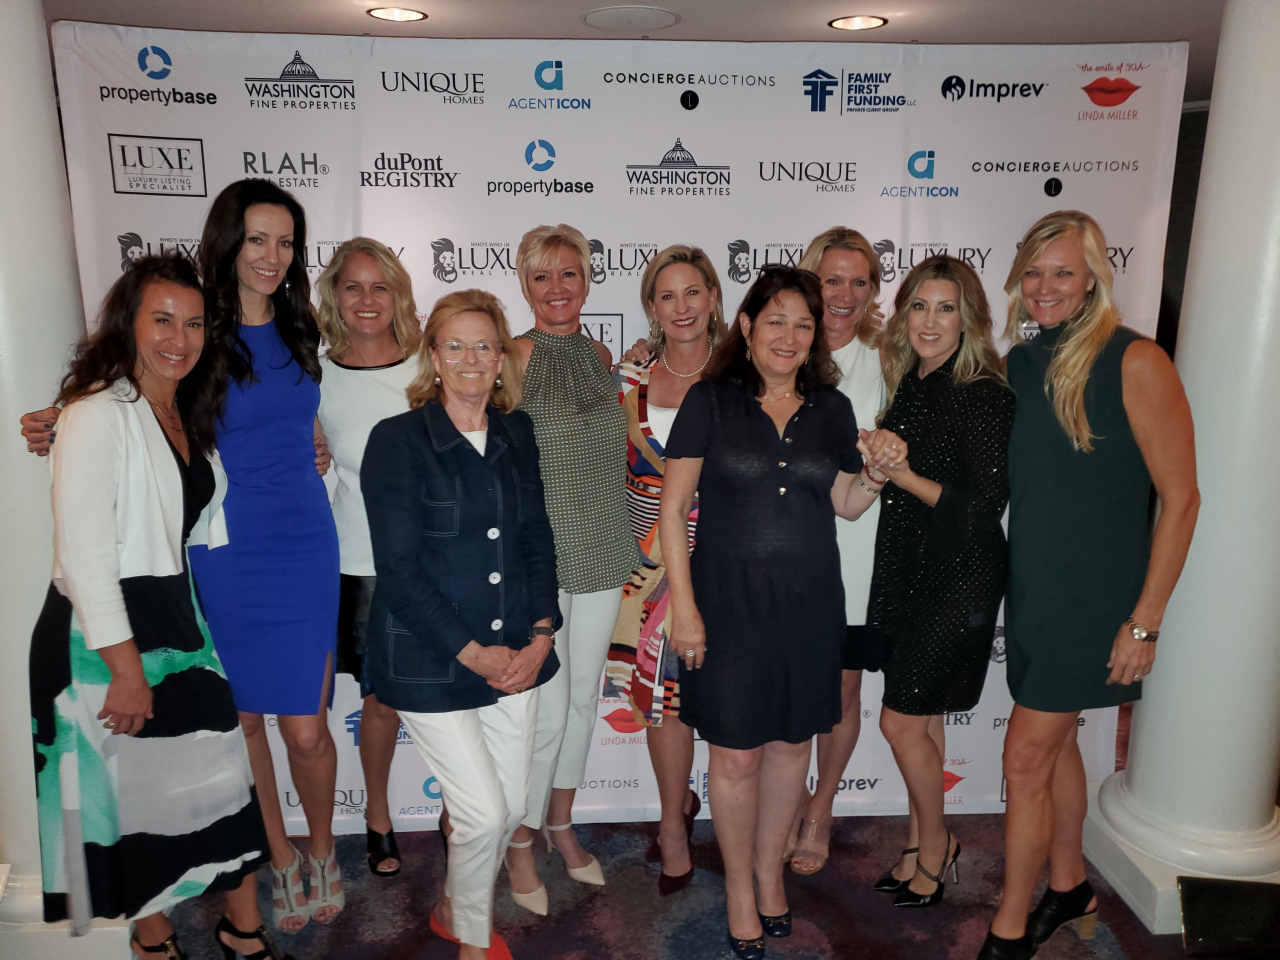 Members of the LIV Sotheby's International Realty team network with others at the 24th Annual Luxury Real Estate Fall Conference.